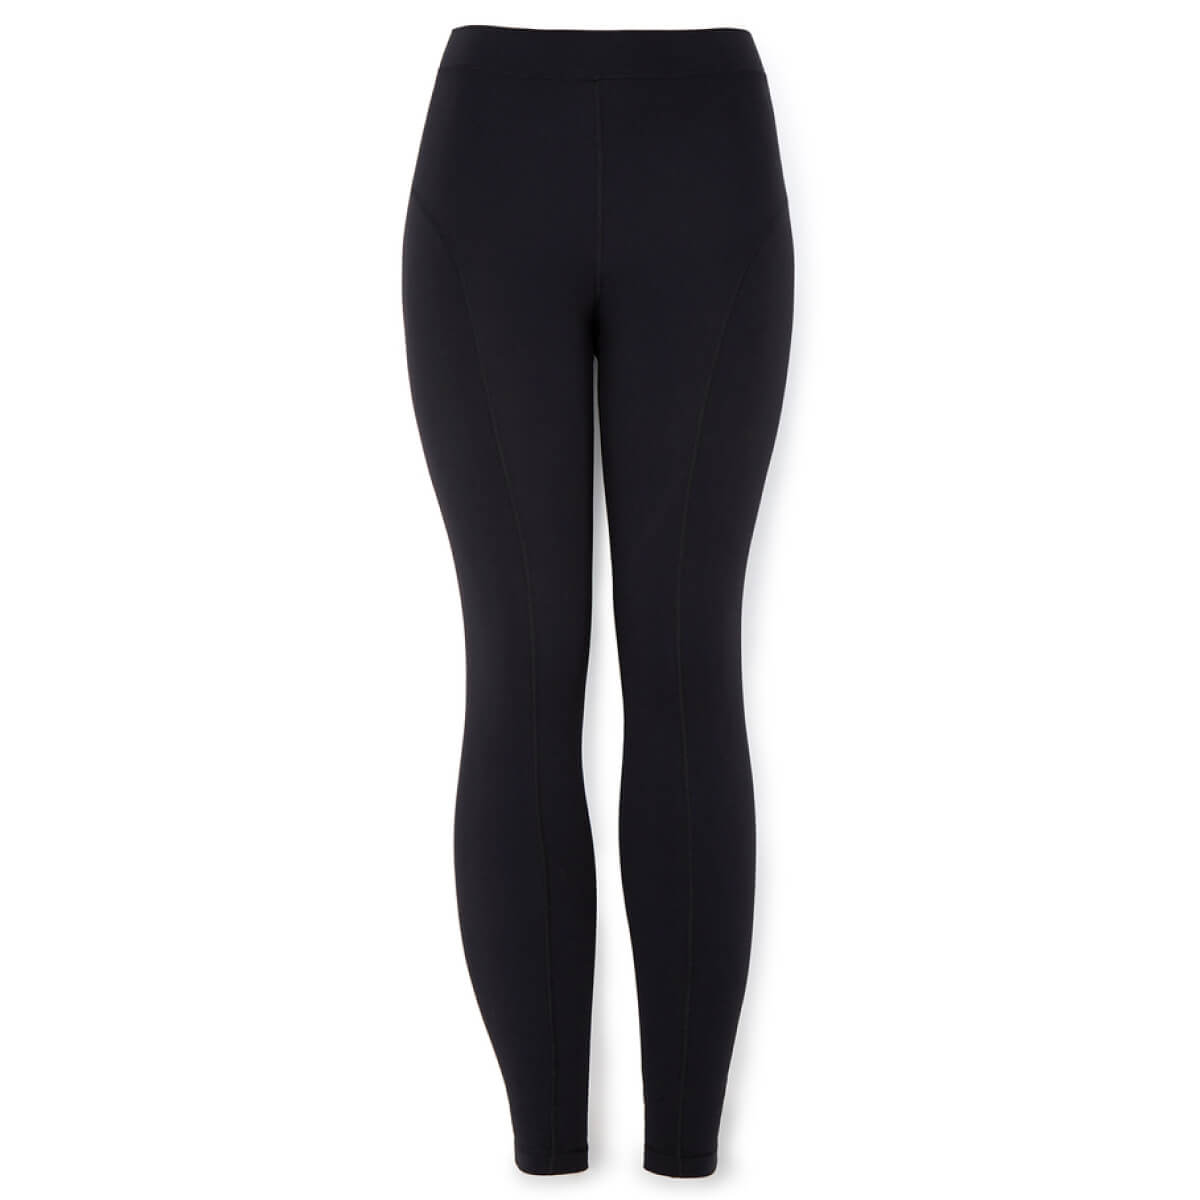 g. sport leggings